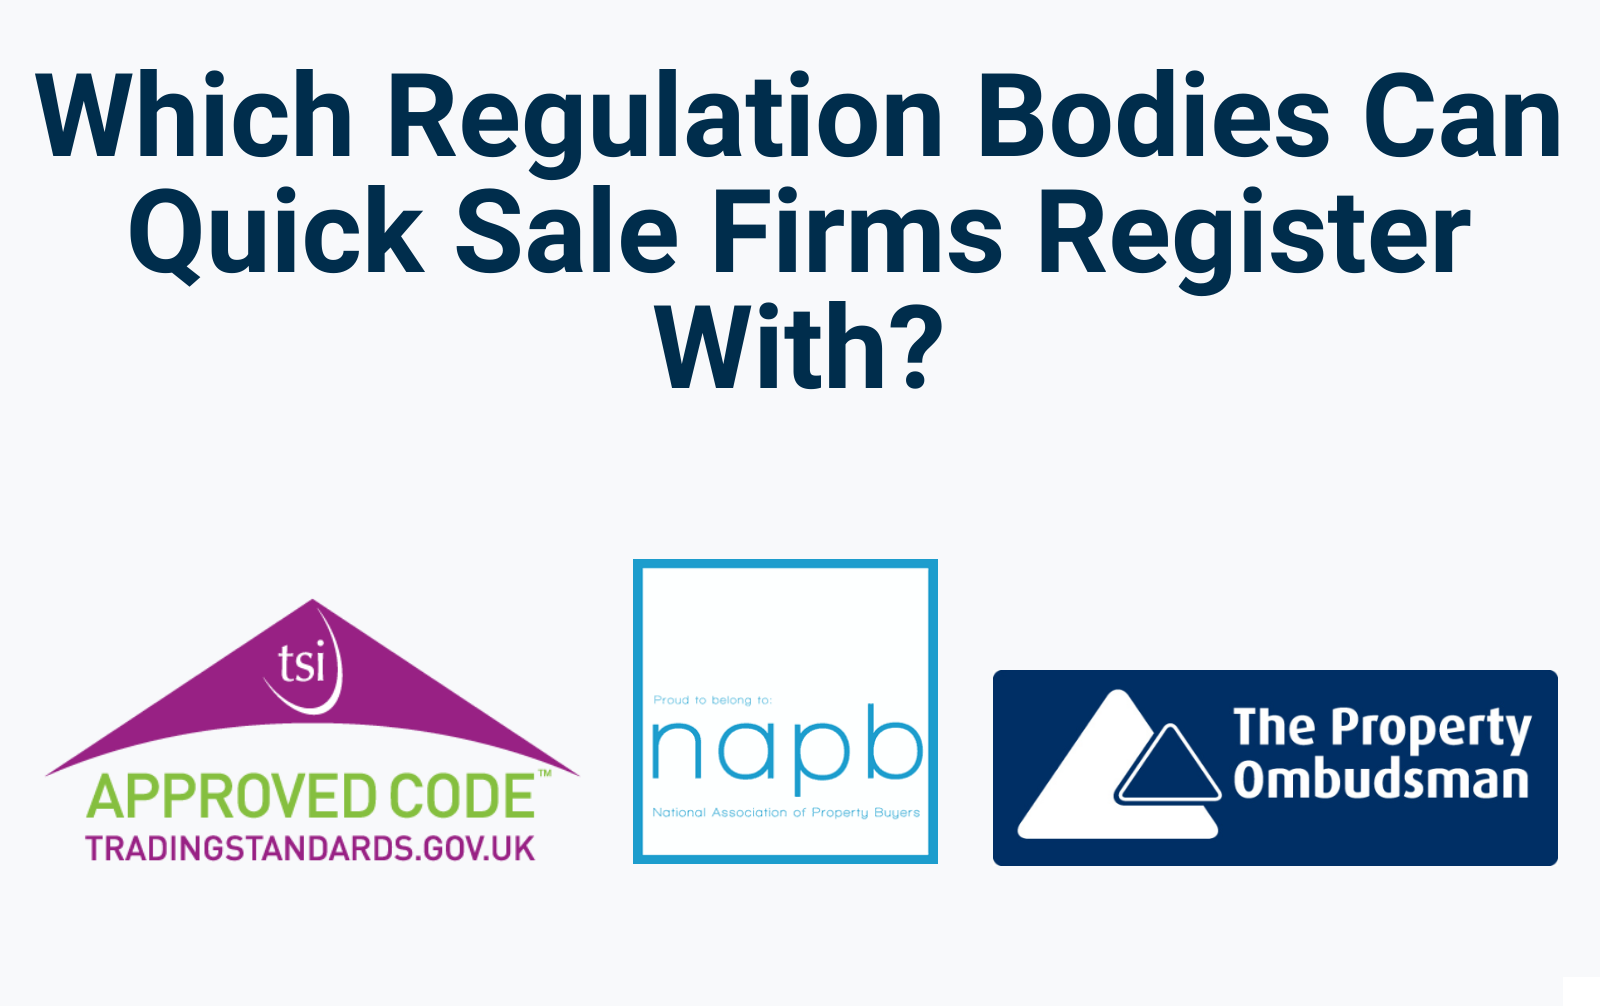 Which regulatory bodies should quick sale firms register with